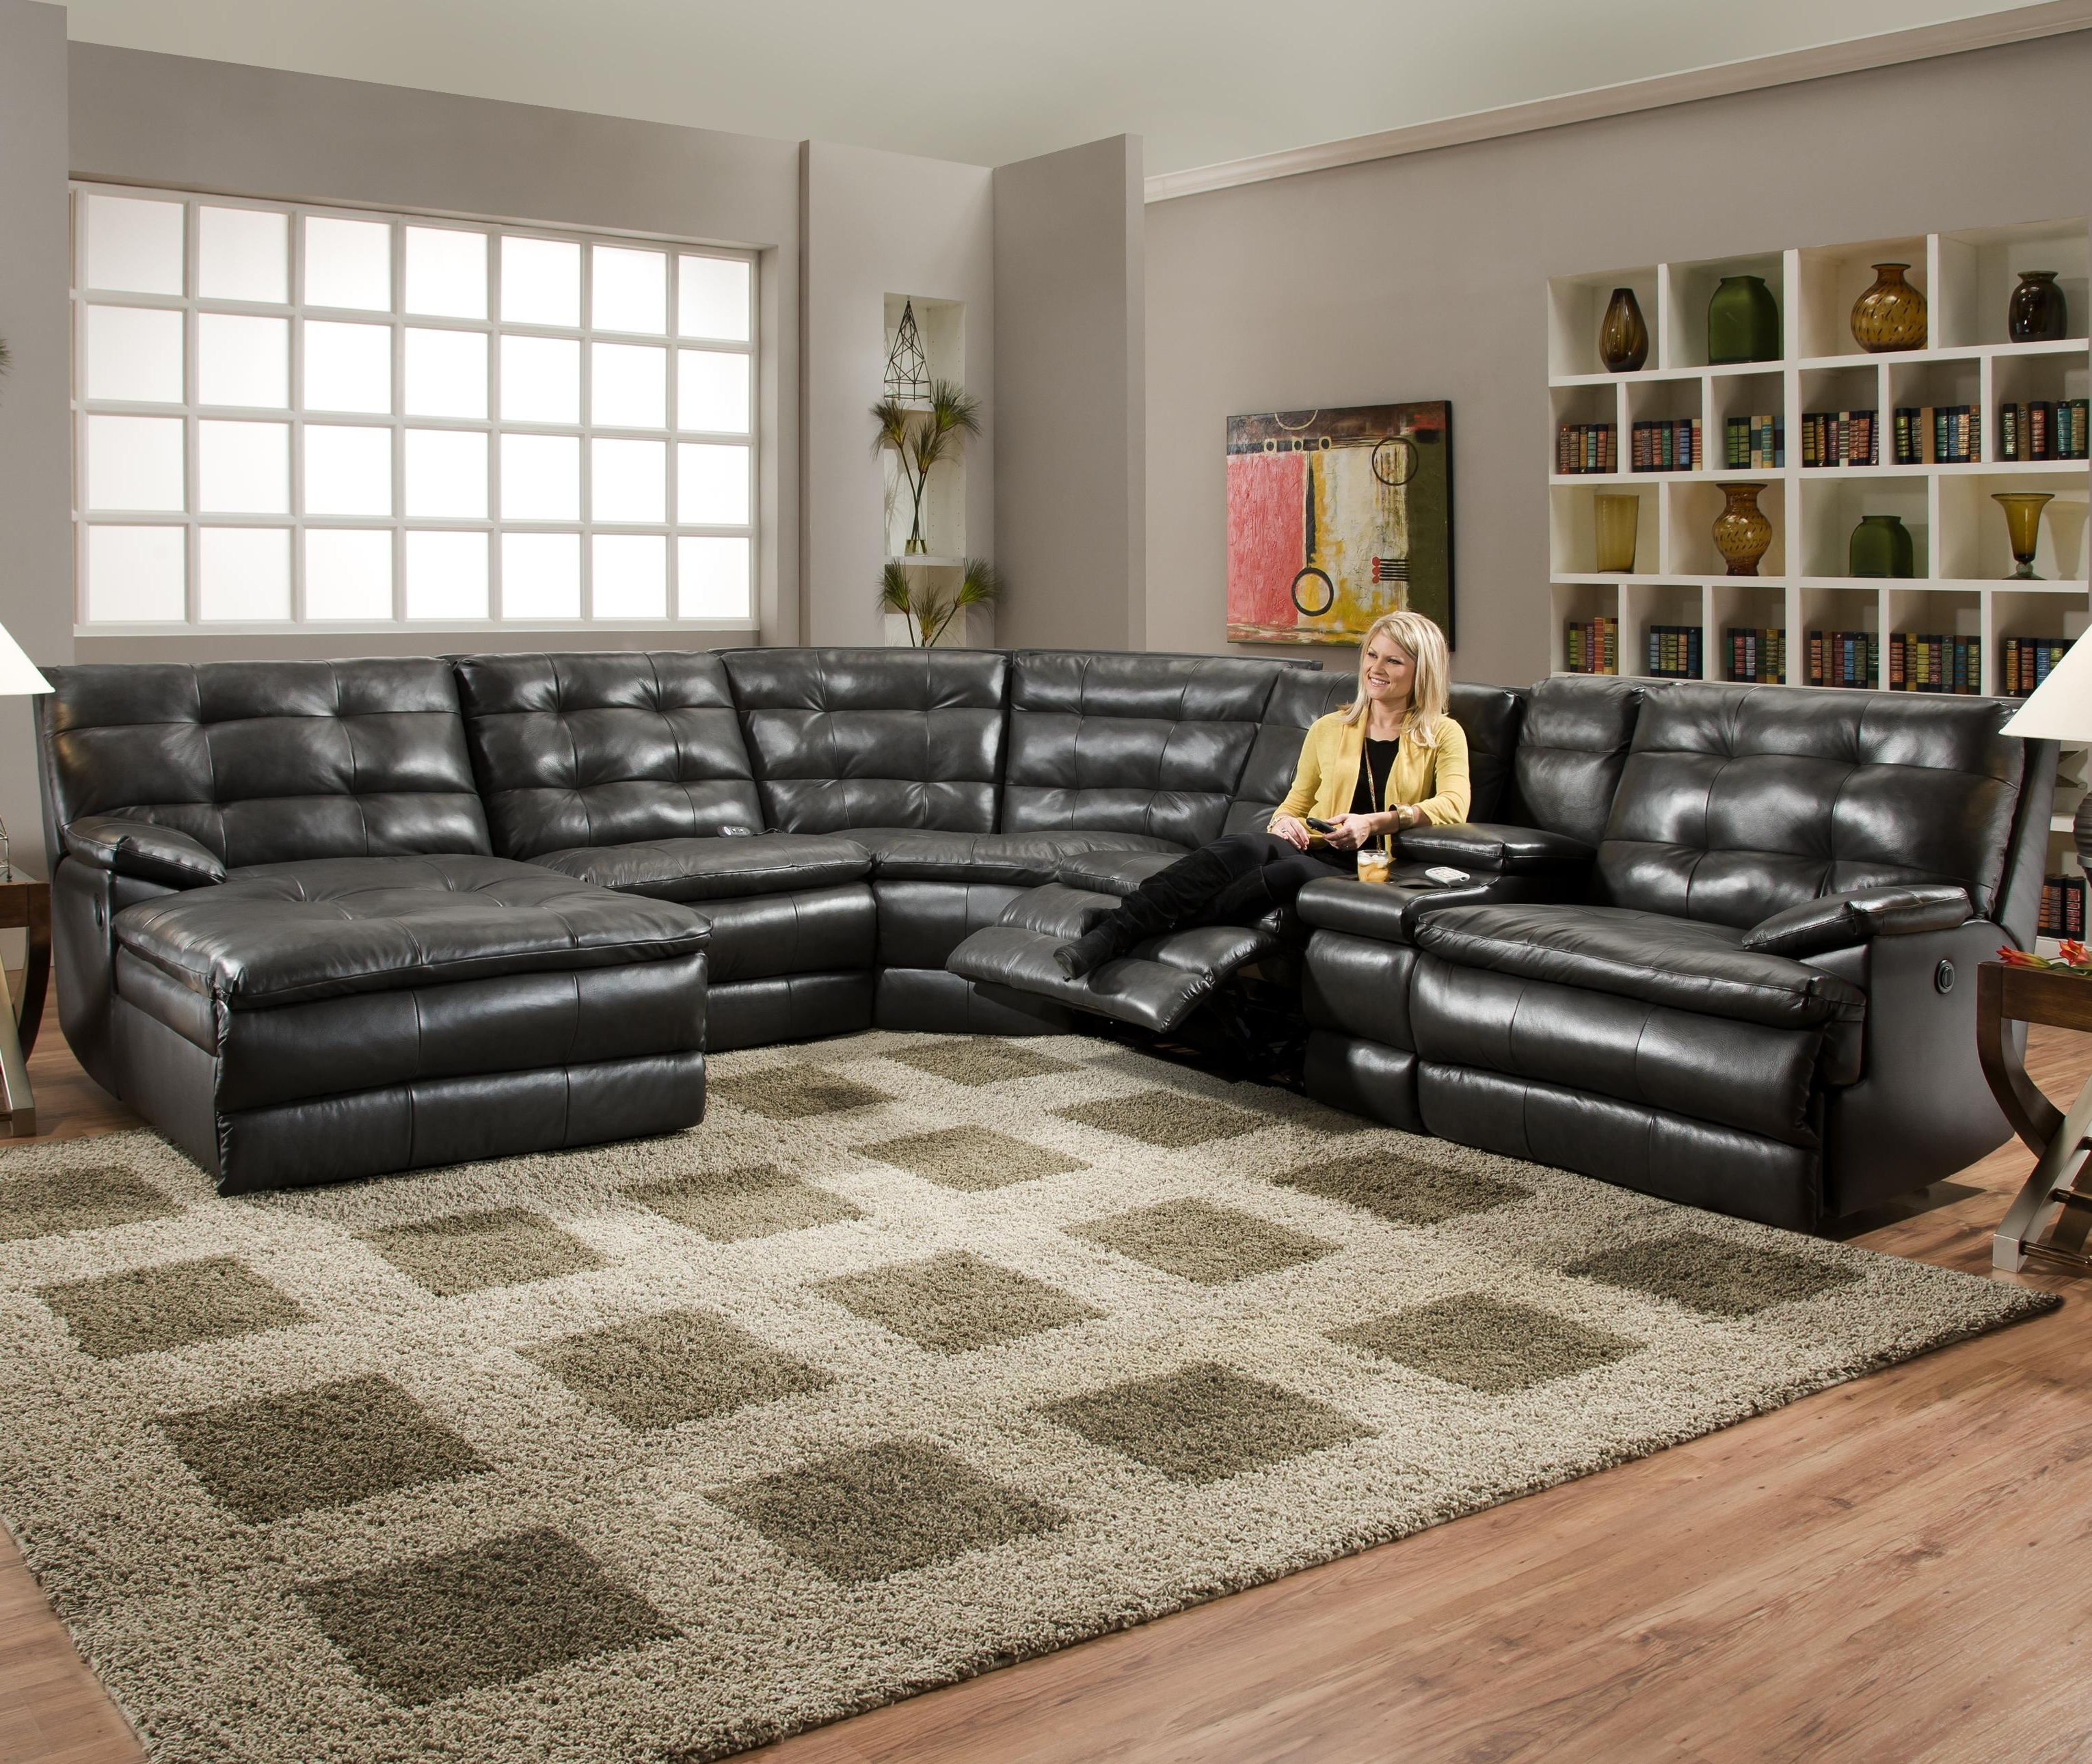 Best And Newest Large Sectional Sofas For Luxurious Tufted Leather Sectional Sofa In Classy Black Color With (View 1 of 15)